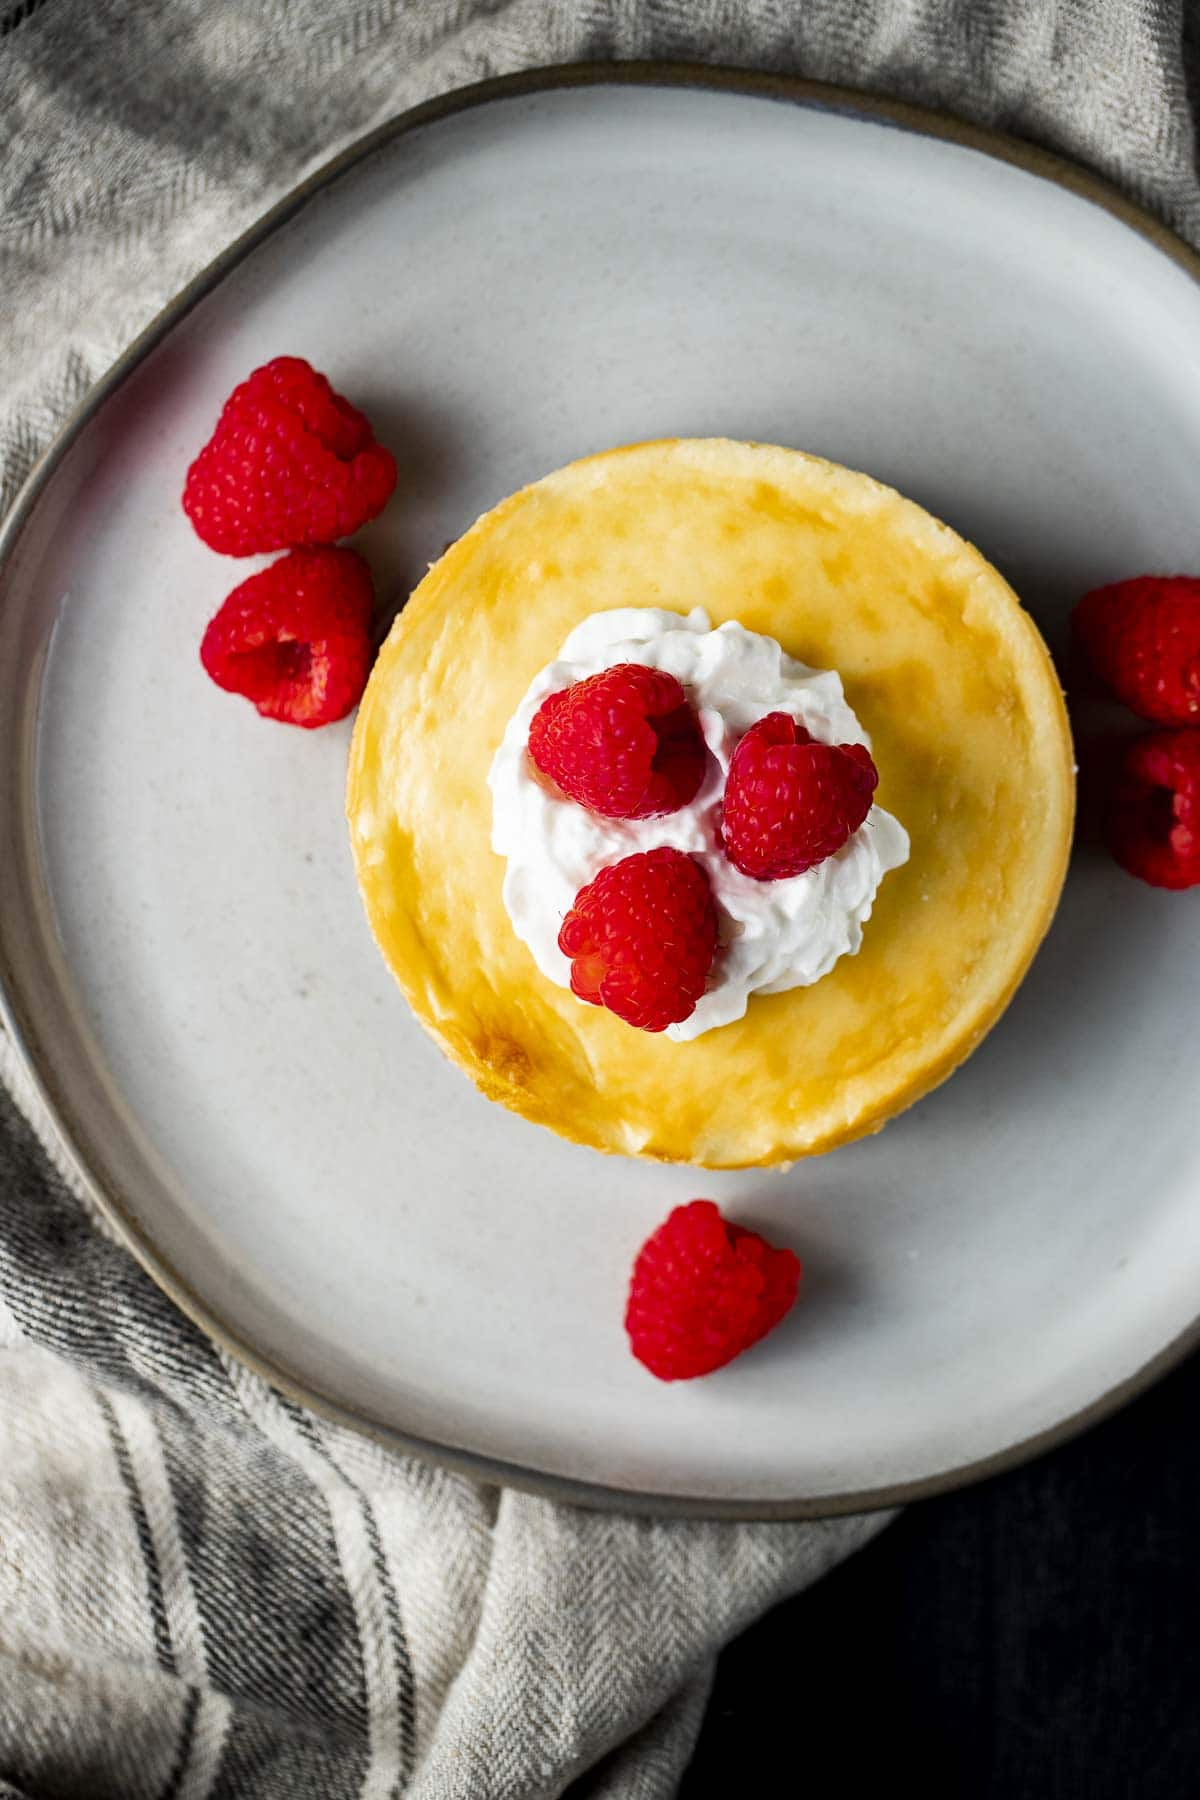 Overhead view of a cheesecake made in an air fryer with whipped cream and raspberries on top.